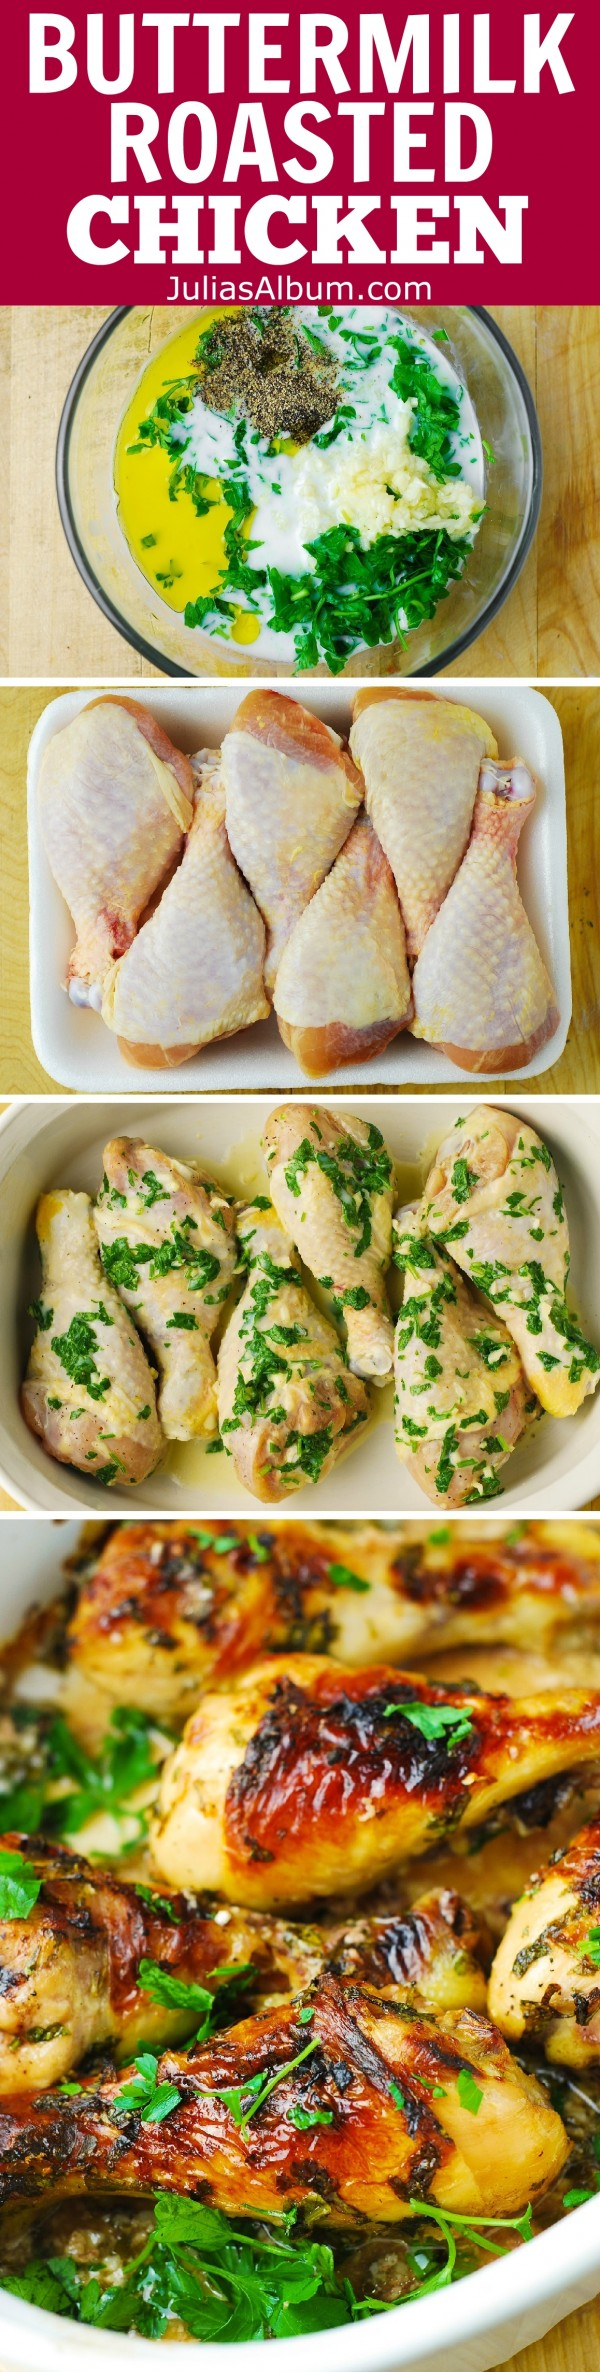 50 Best Chicken Recipes Ever - Get the recipe ♥ Buttermilk Roasted Chicken @recipes_to_go